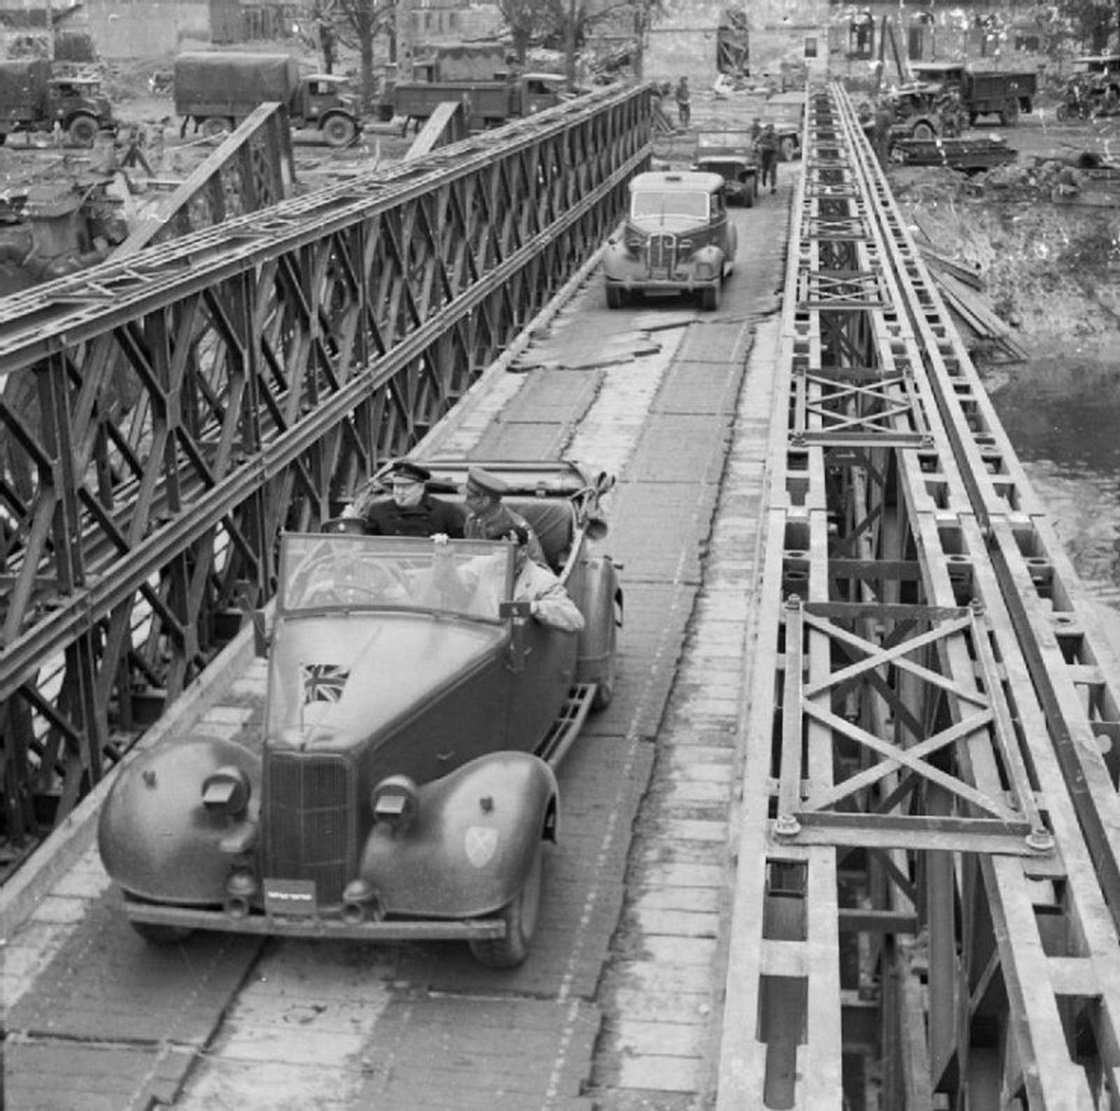 Prime Minister Winston Churchill and General Sir Bernard Montgomery crossing the River Orne over the Winston Bridge 22 July 1944  Bridges to Victory, Bailey Bridges <br>http://pic.twitter.com/HtonlvBfce